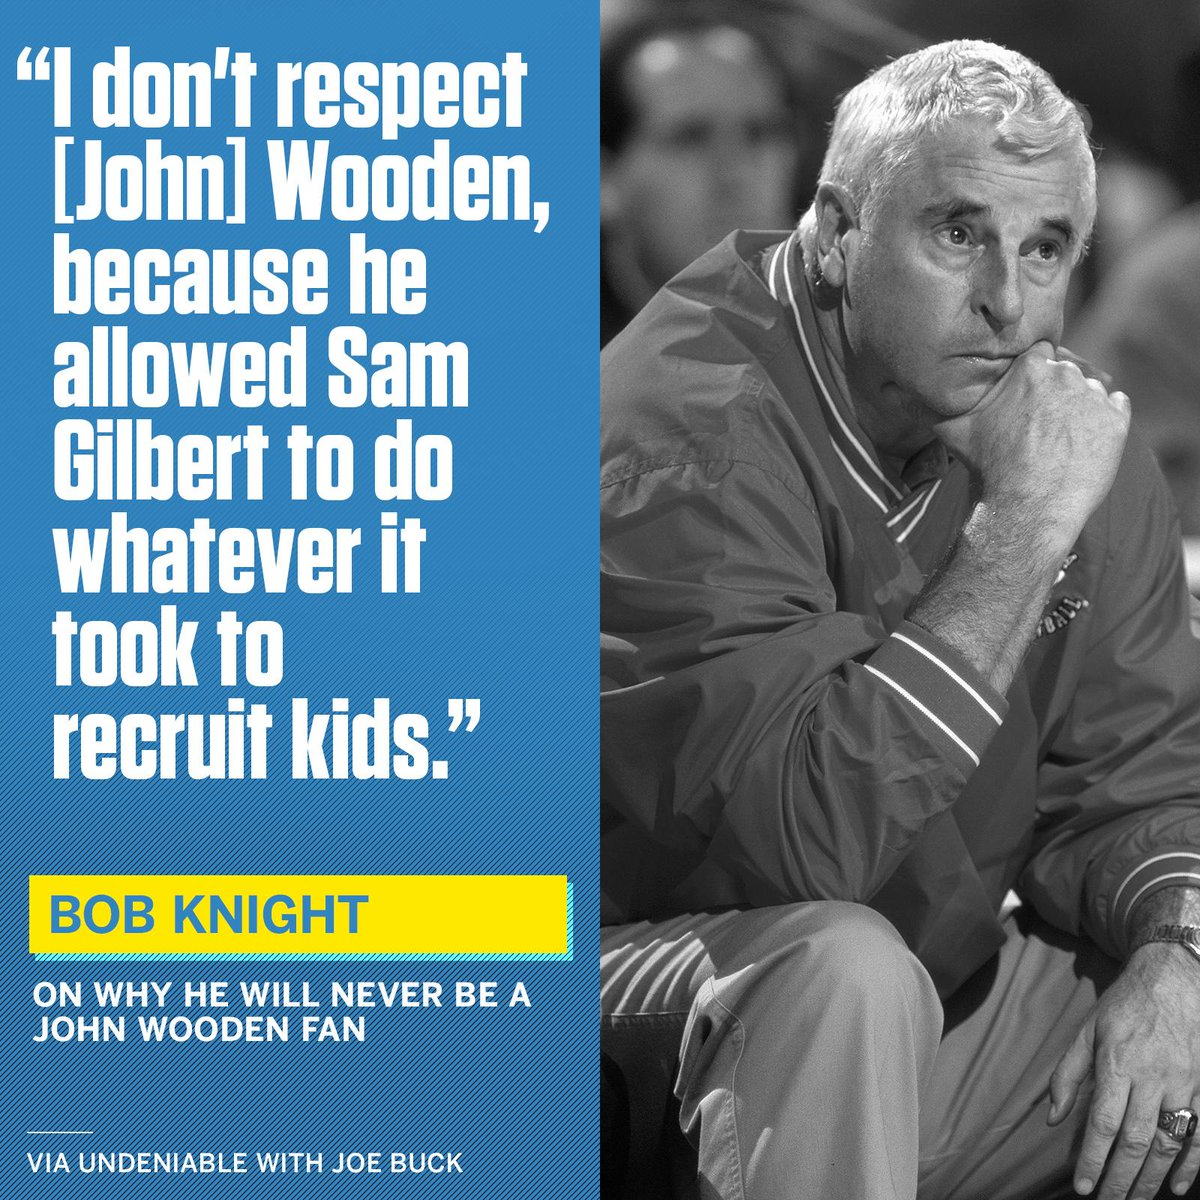 Sportscenter On Twitter Bob Knight Ripped John Wooden For Allowing